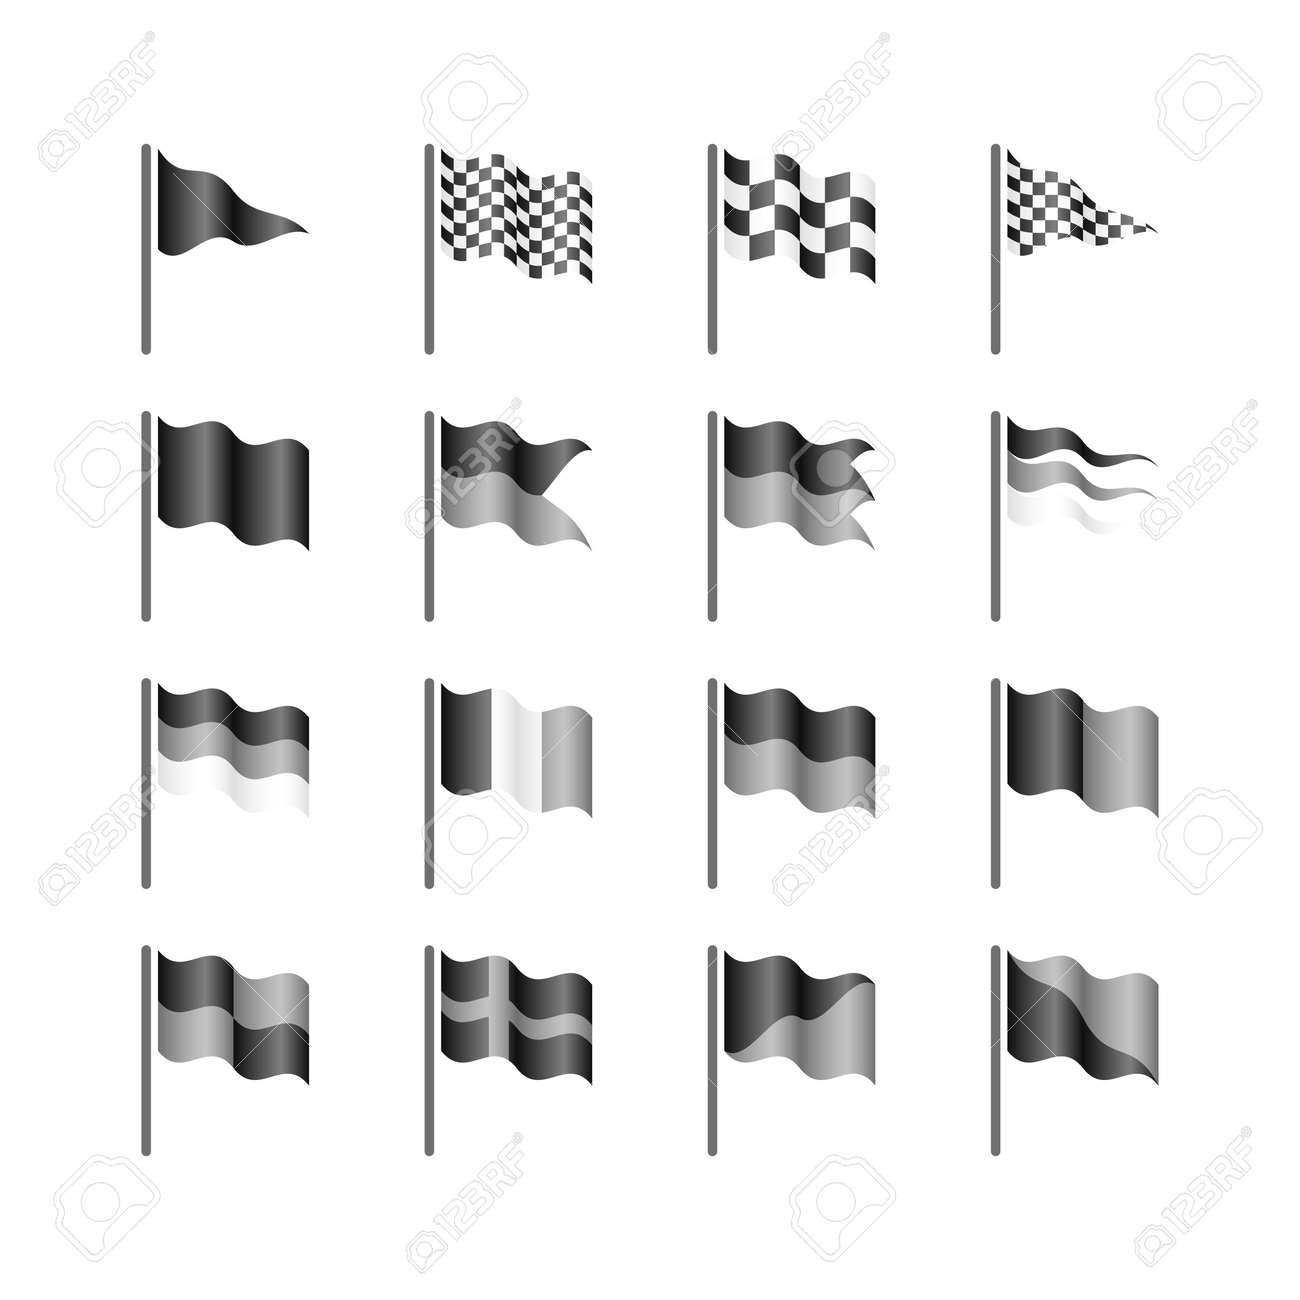 21 386 flagpole cliparts stock vector and royalty free flagpole